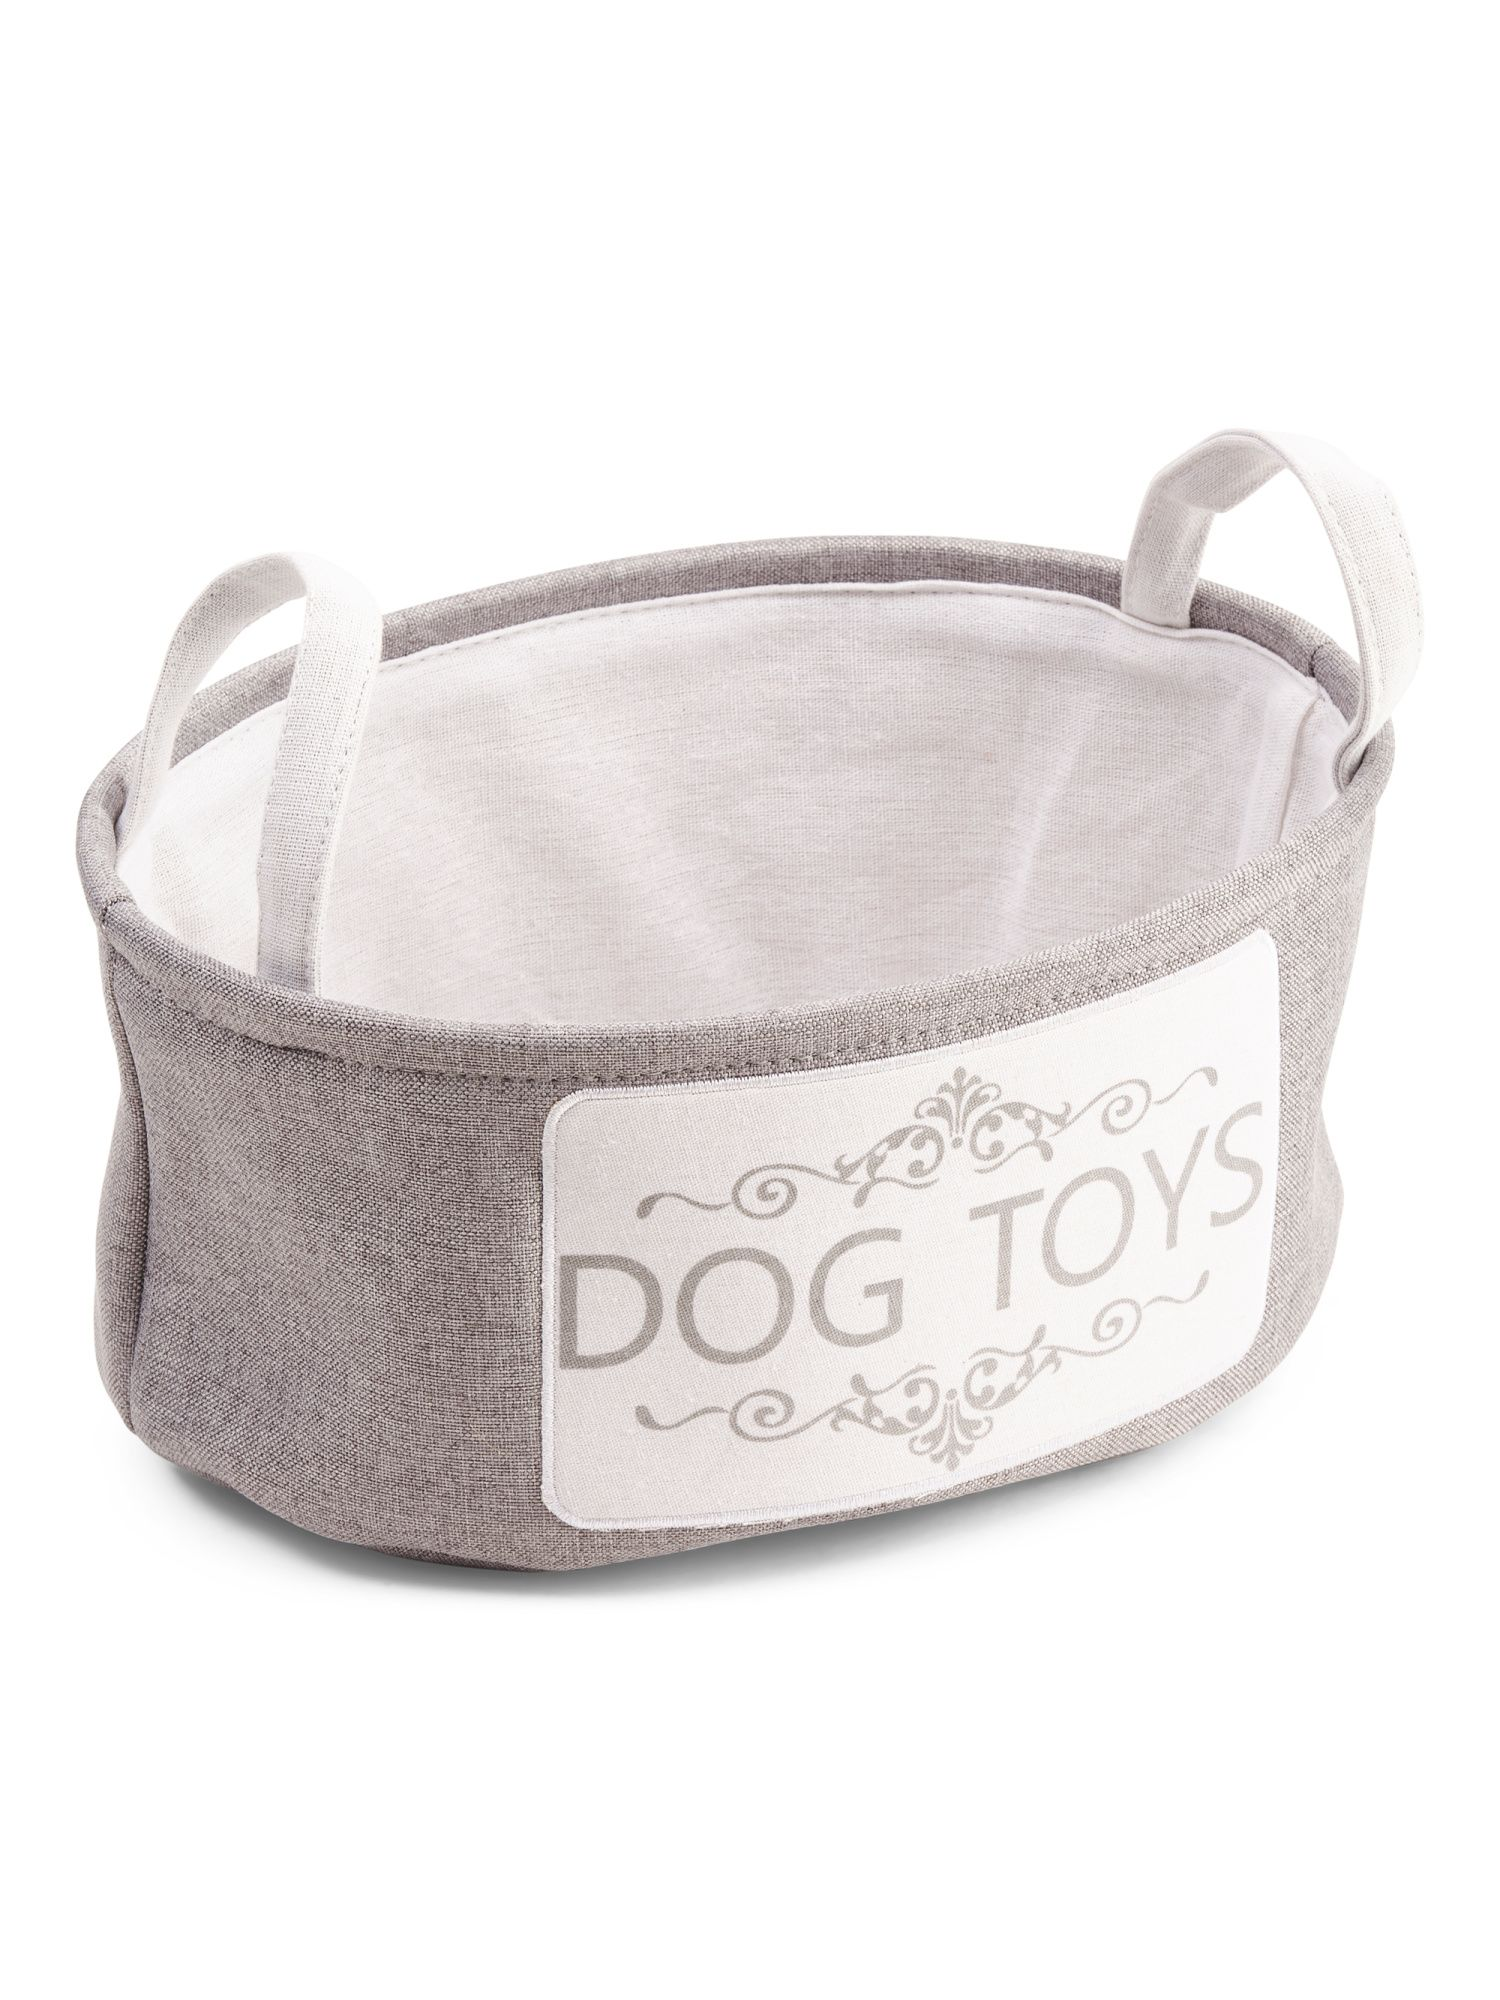 Medium Dog Toy Storage Basket New Arrivals T J Maxx Dog Toy